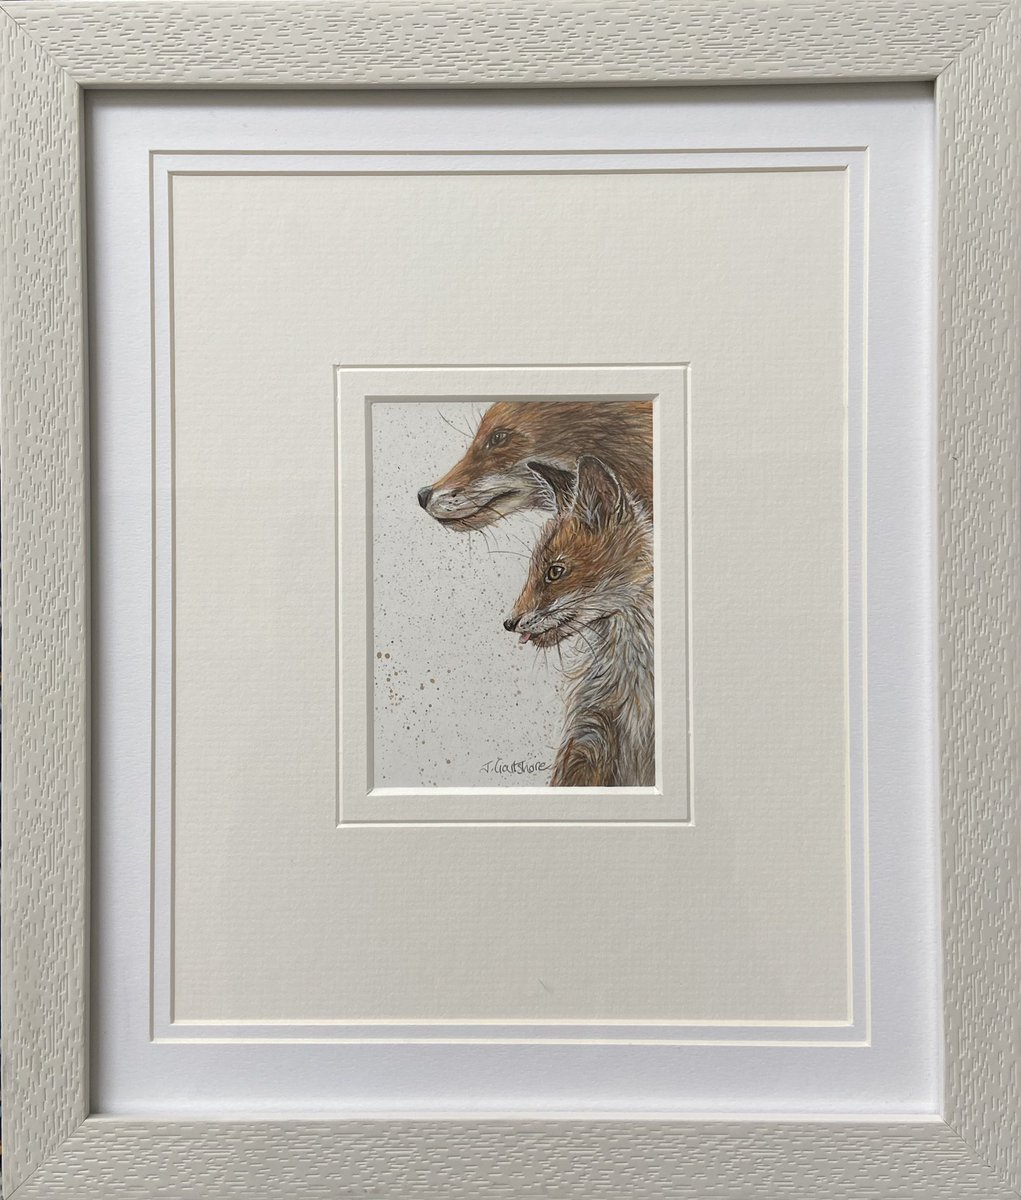 Minature framed #vixen with her #cub painted in #watercolour . Photo reference courtesy of @bearprintsphoto . @ChrisGPackham @BBCSpringwatch @Benfogle @BillOddie @michaelastracha @TVsSimonKing @gillians_voice @gordonjbuchanan @katehumble @MartinHGames #art #fox #nature #wildlifepic.twitter.com/FhcywIMM1n